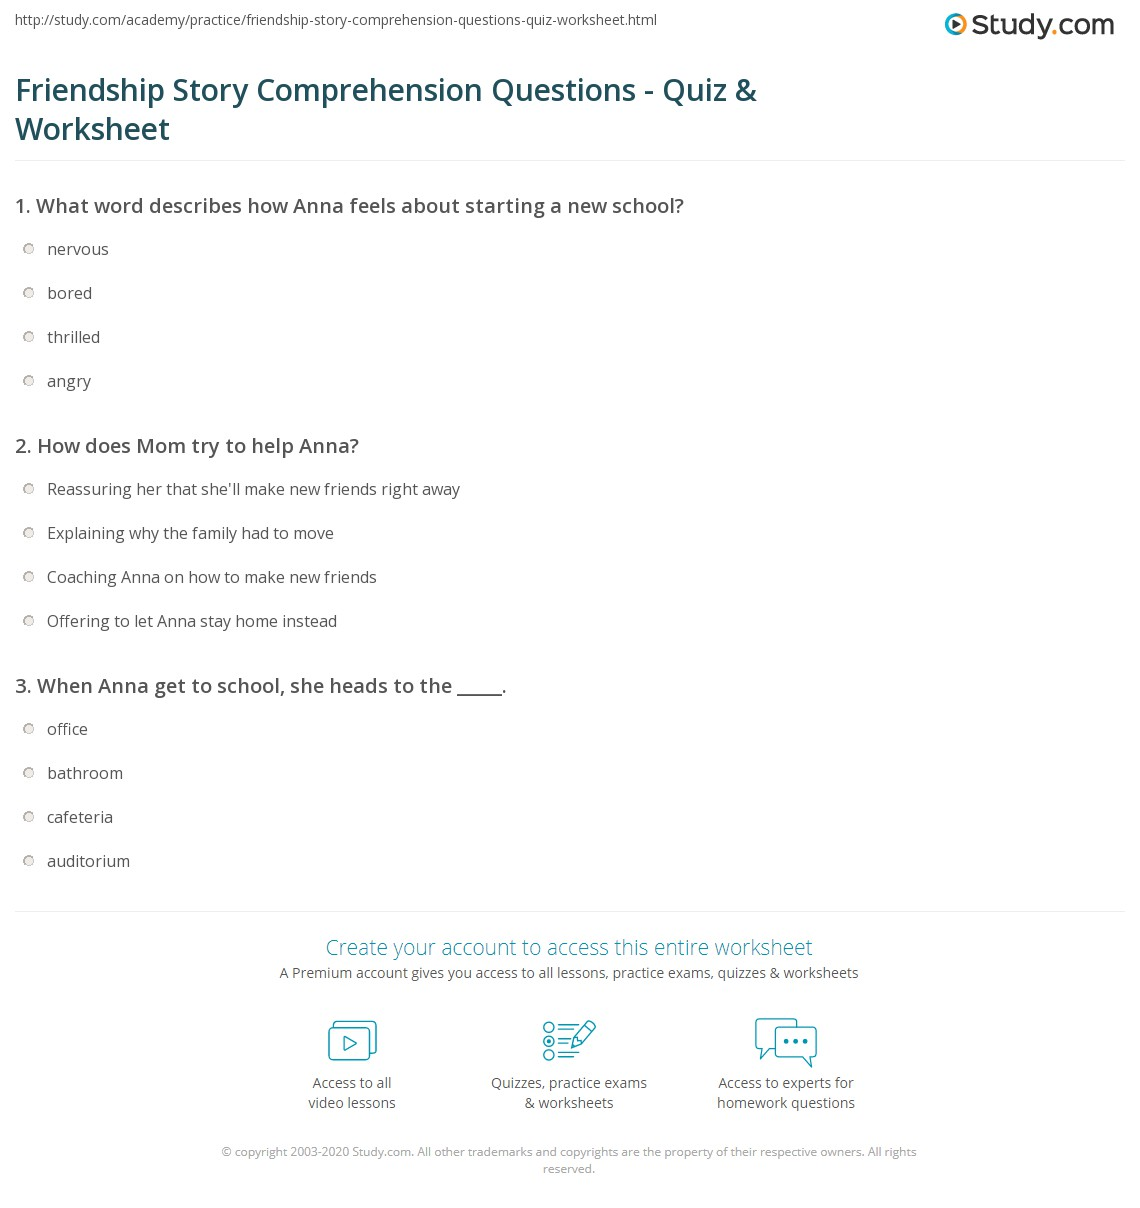 worksheet Friendship Worksheets friendship story comprehension questions quiz worksheet study com print short about for kids worksheet